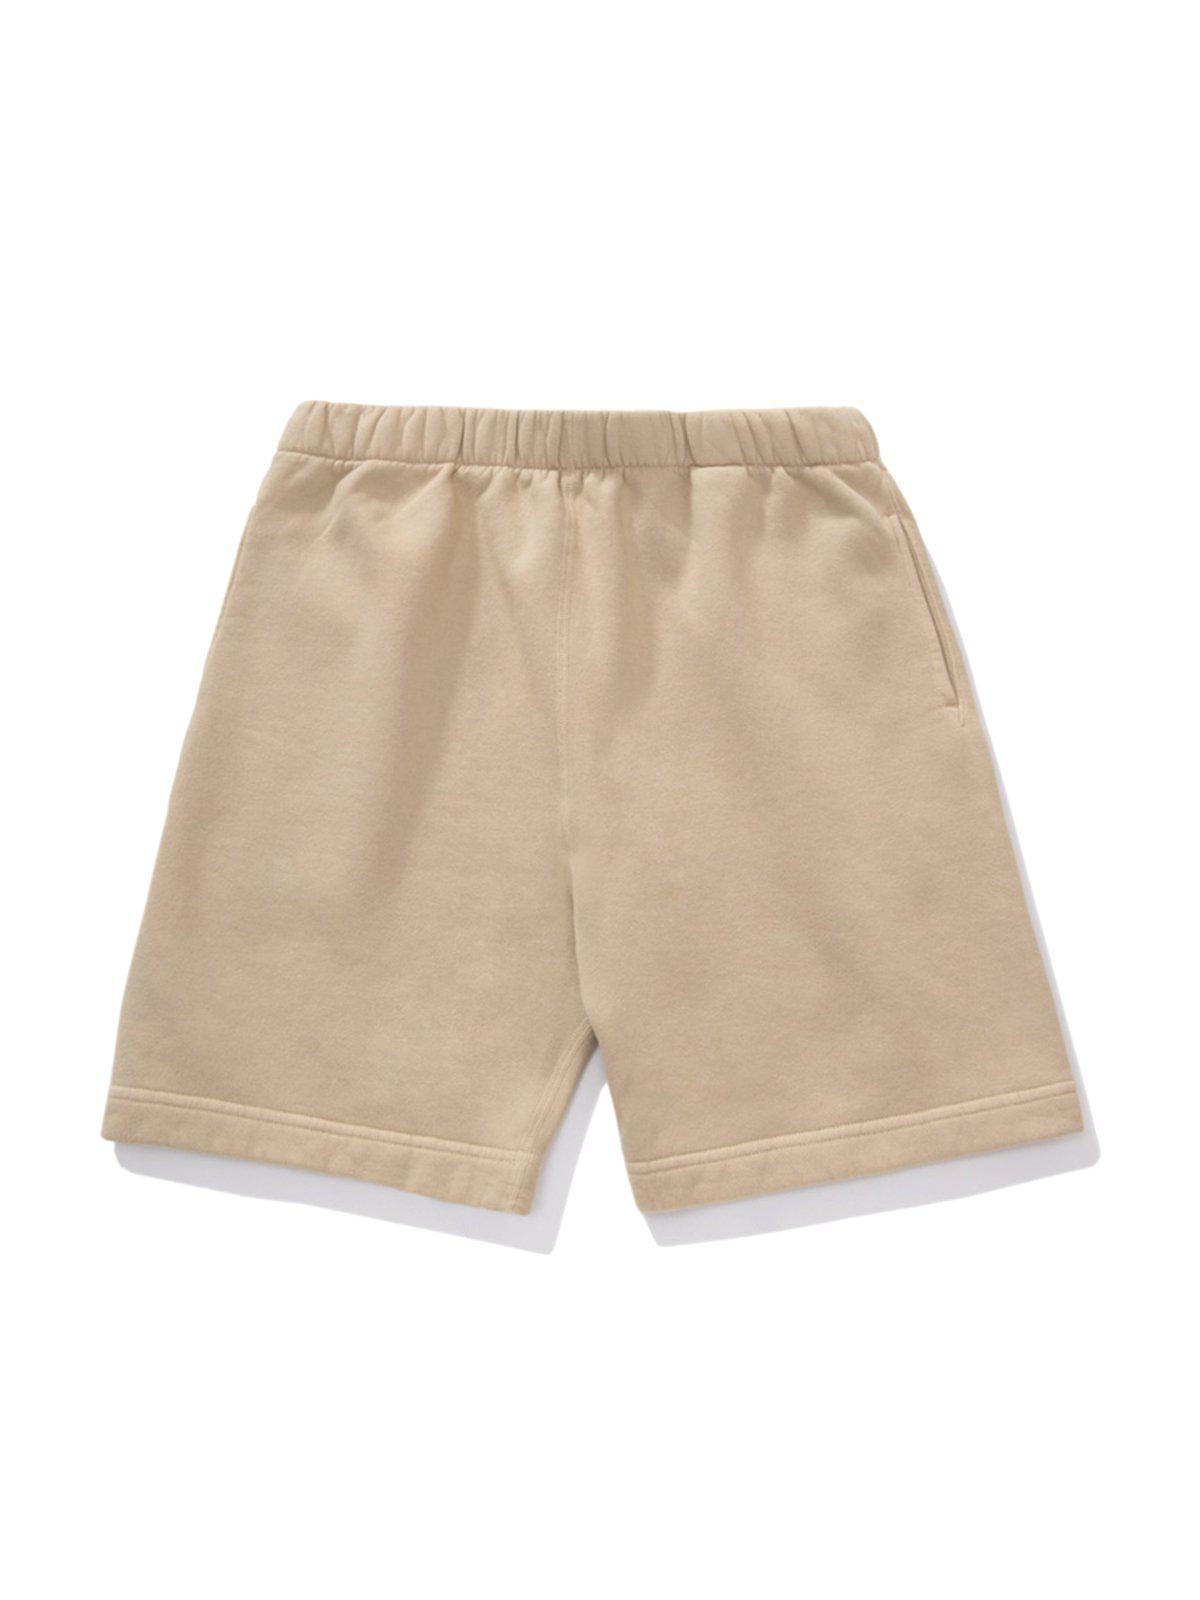 Lady White Co. Sweatshort Beige - MORE by Morello Indonesia